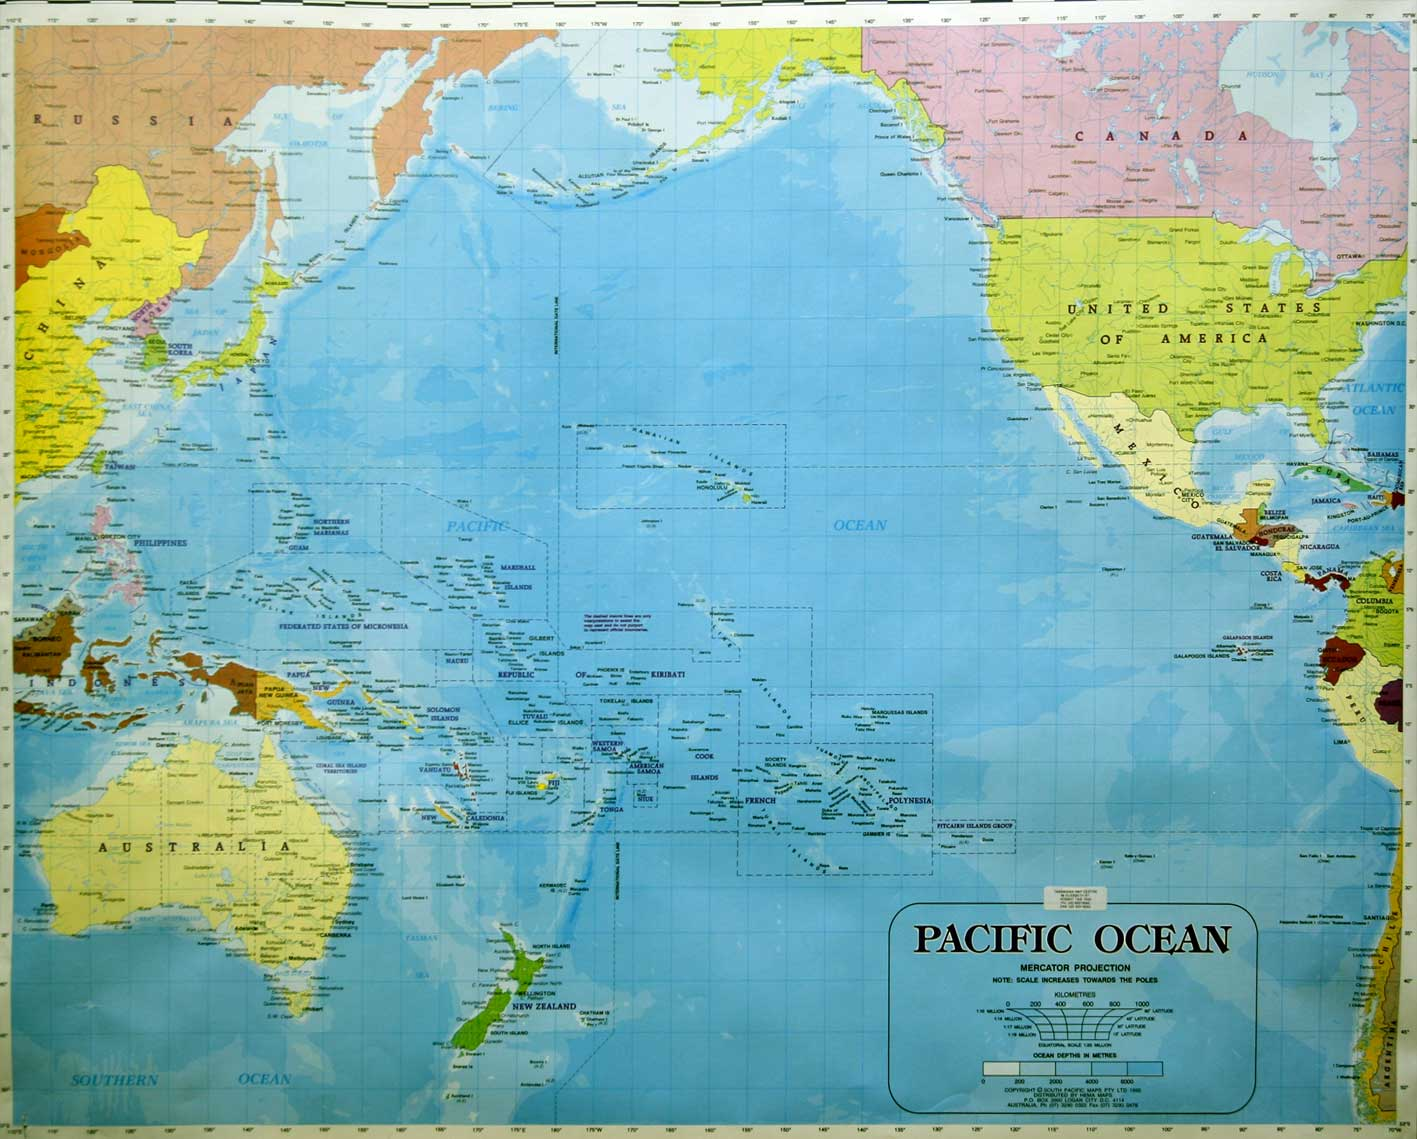 Maps Of The South Pacific Ocean